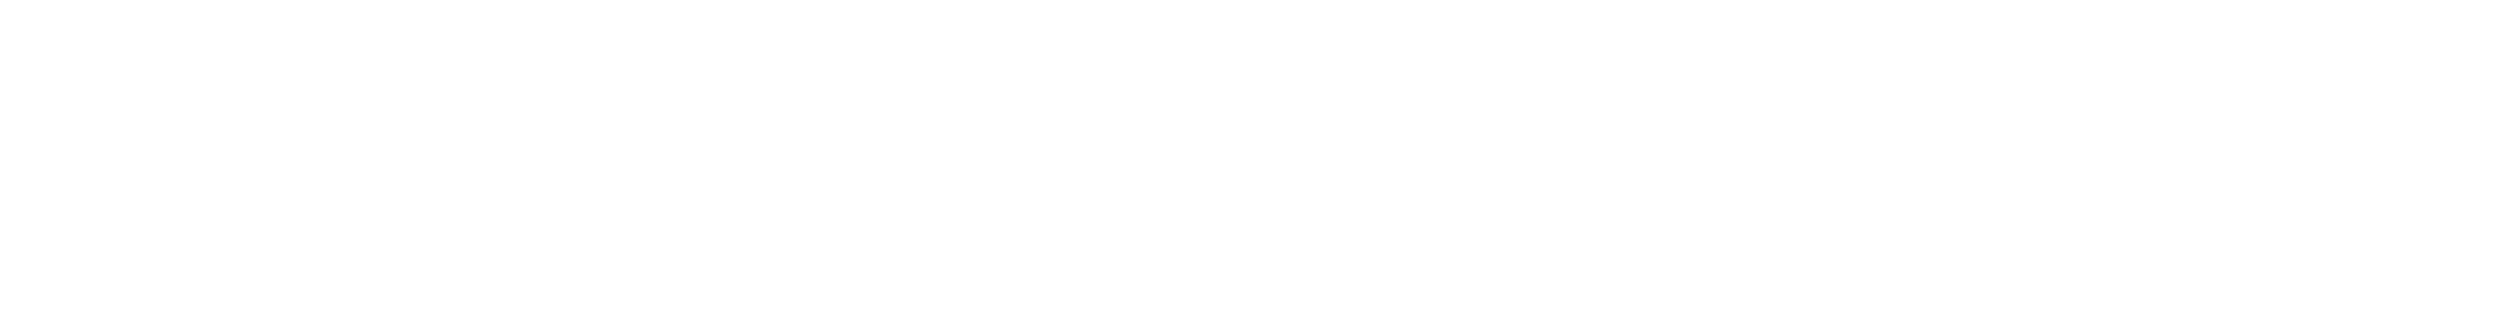 Hellohappen_White-transparent_favicon